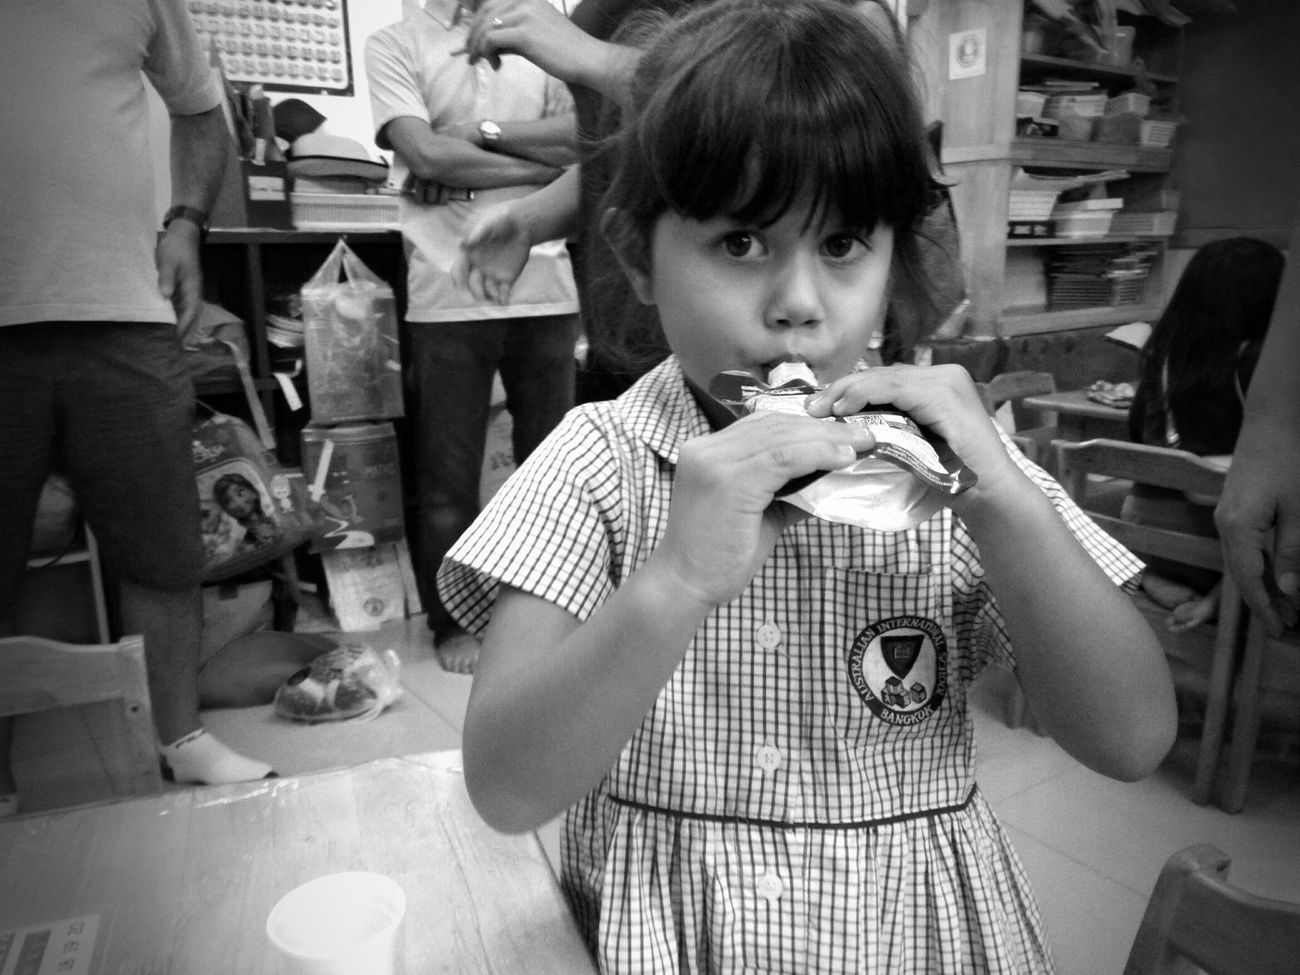 Little Girl Just A Moment When We Were Young School Day Looking At Camera Good Bye School Just Young  Black & White Black And White Photography Love ♥ Look At Me!